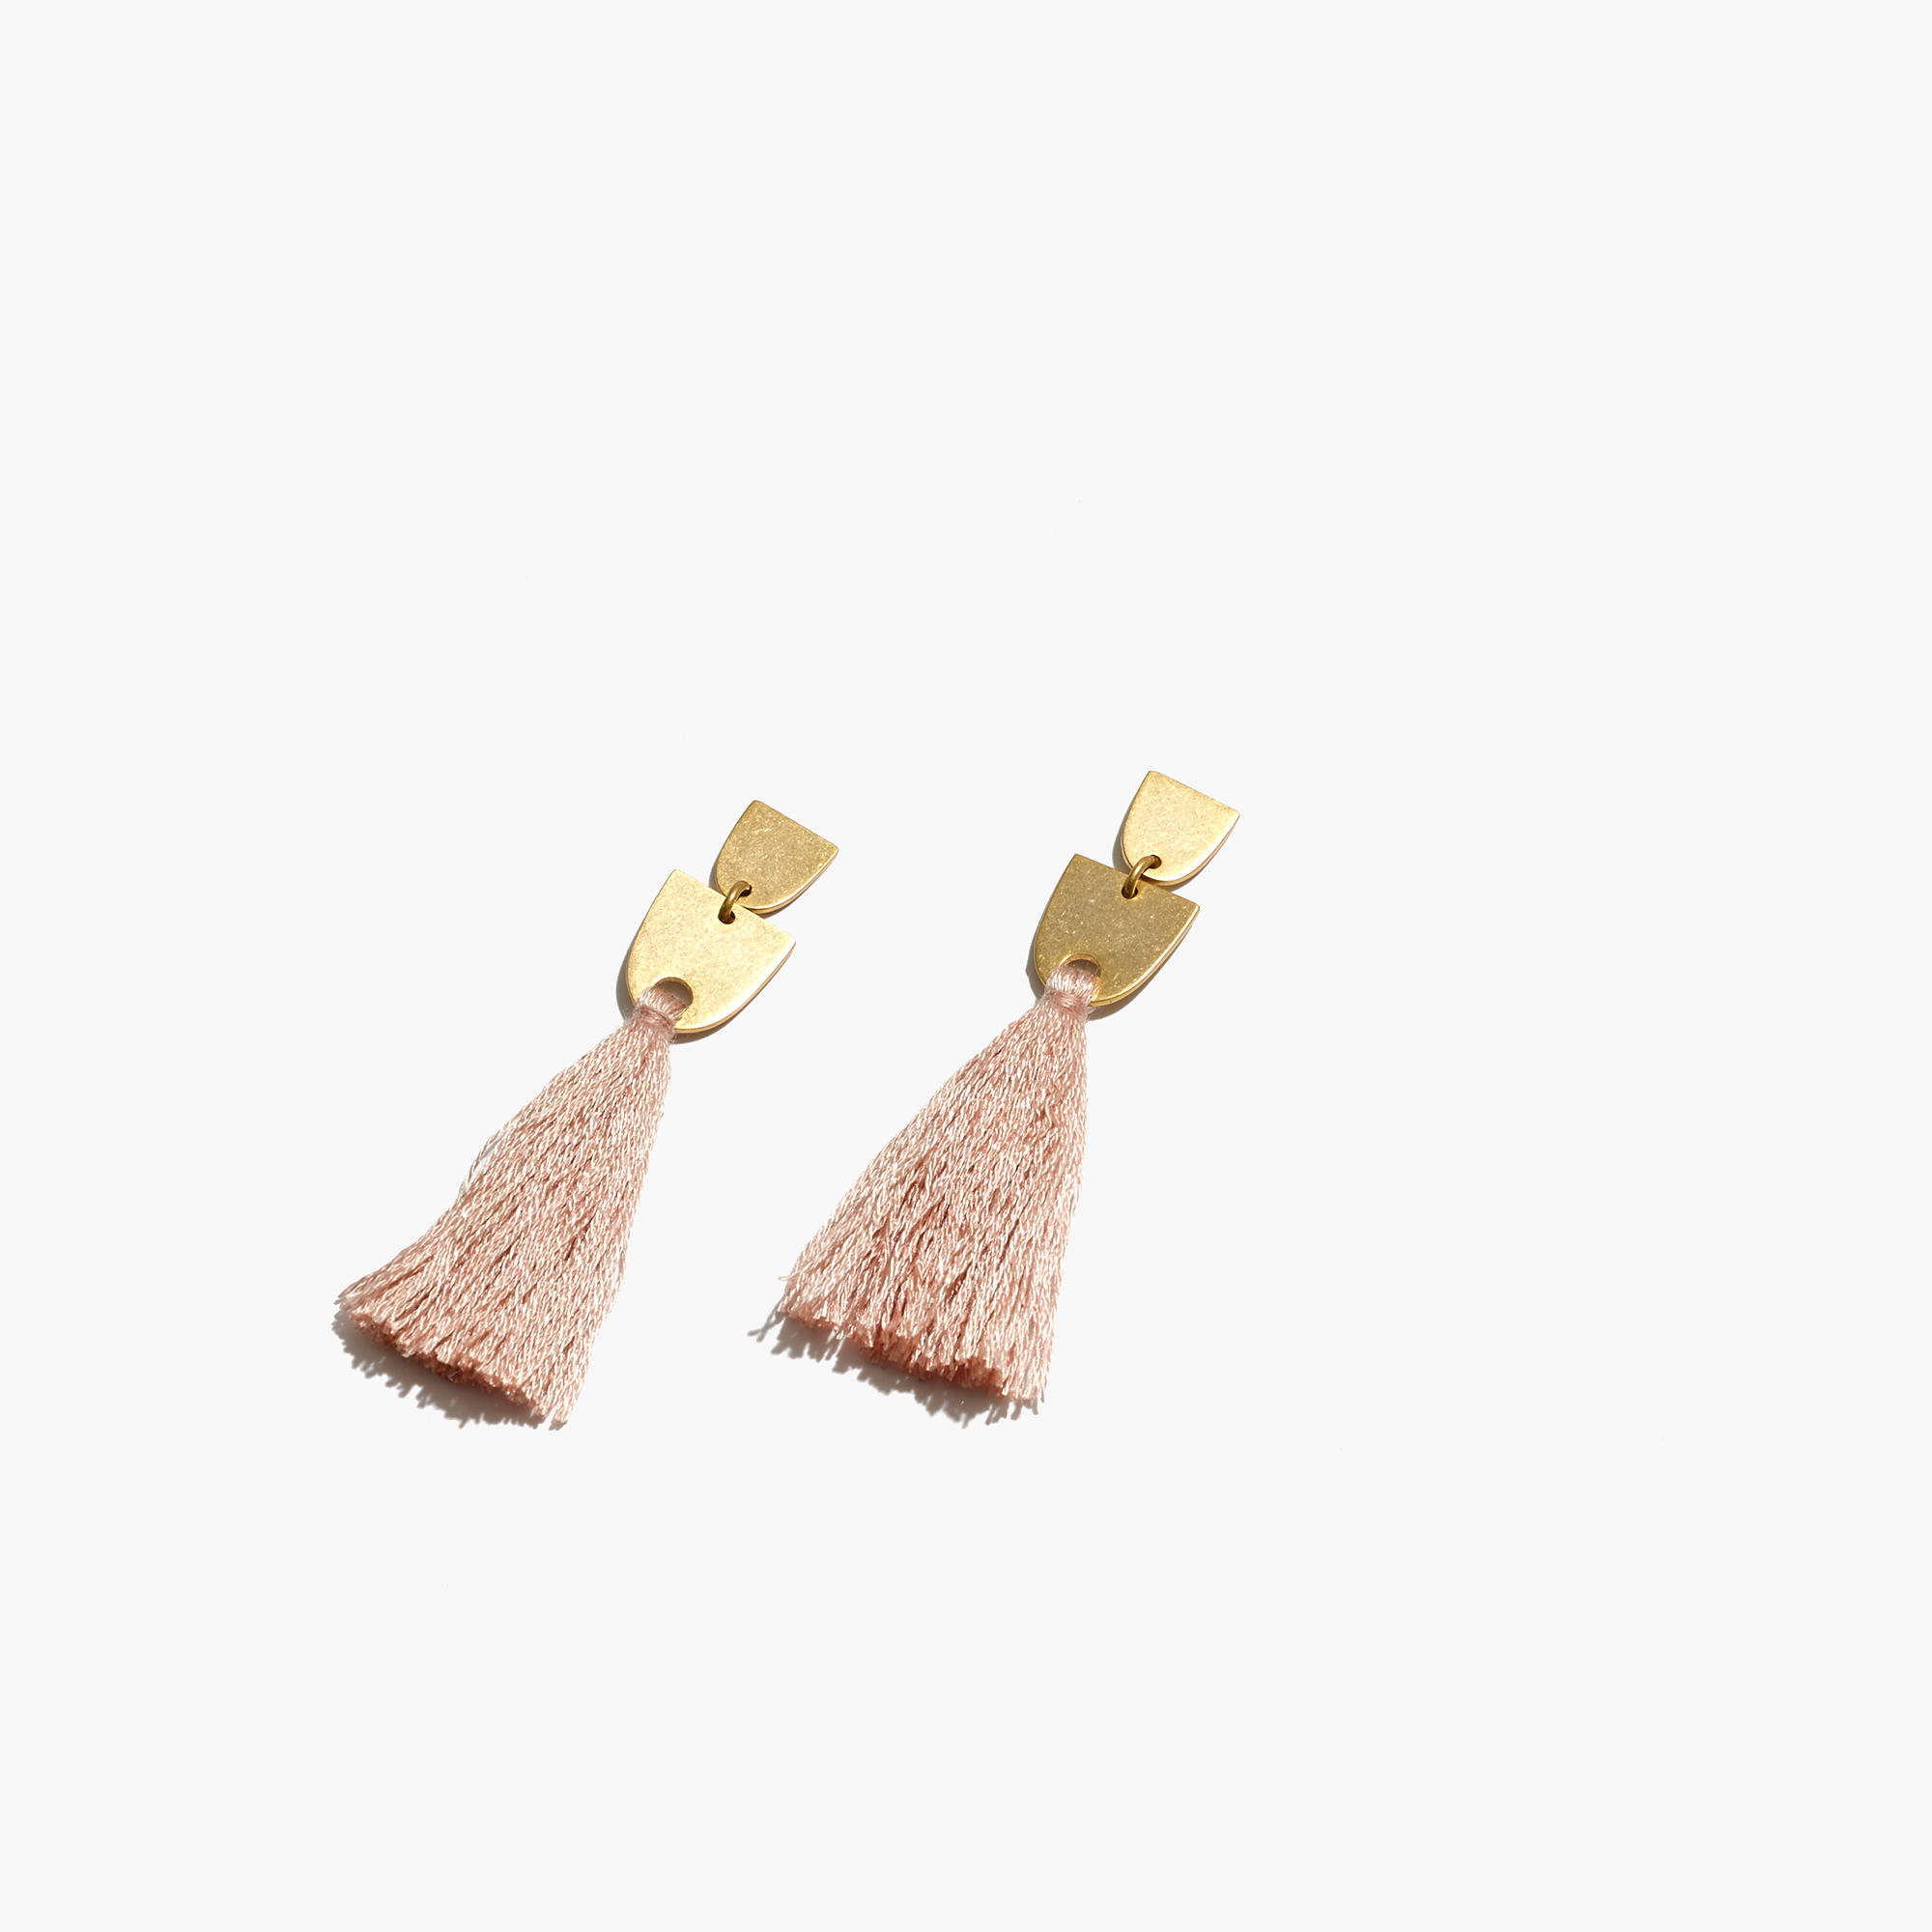 Madewell - Tassel Earrings - £24.15